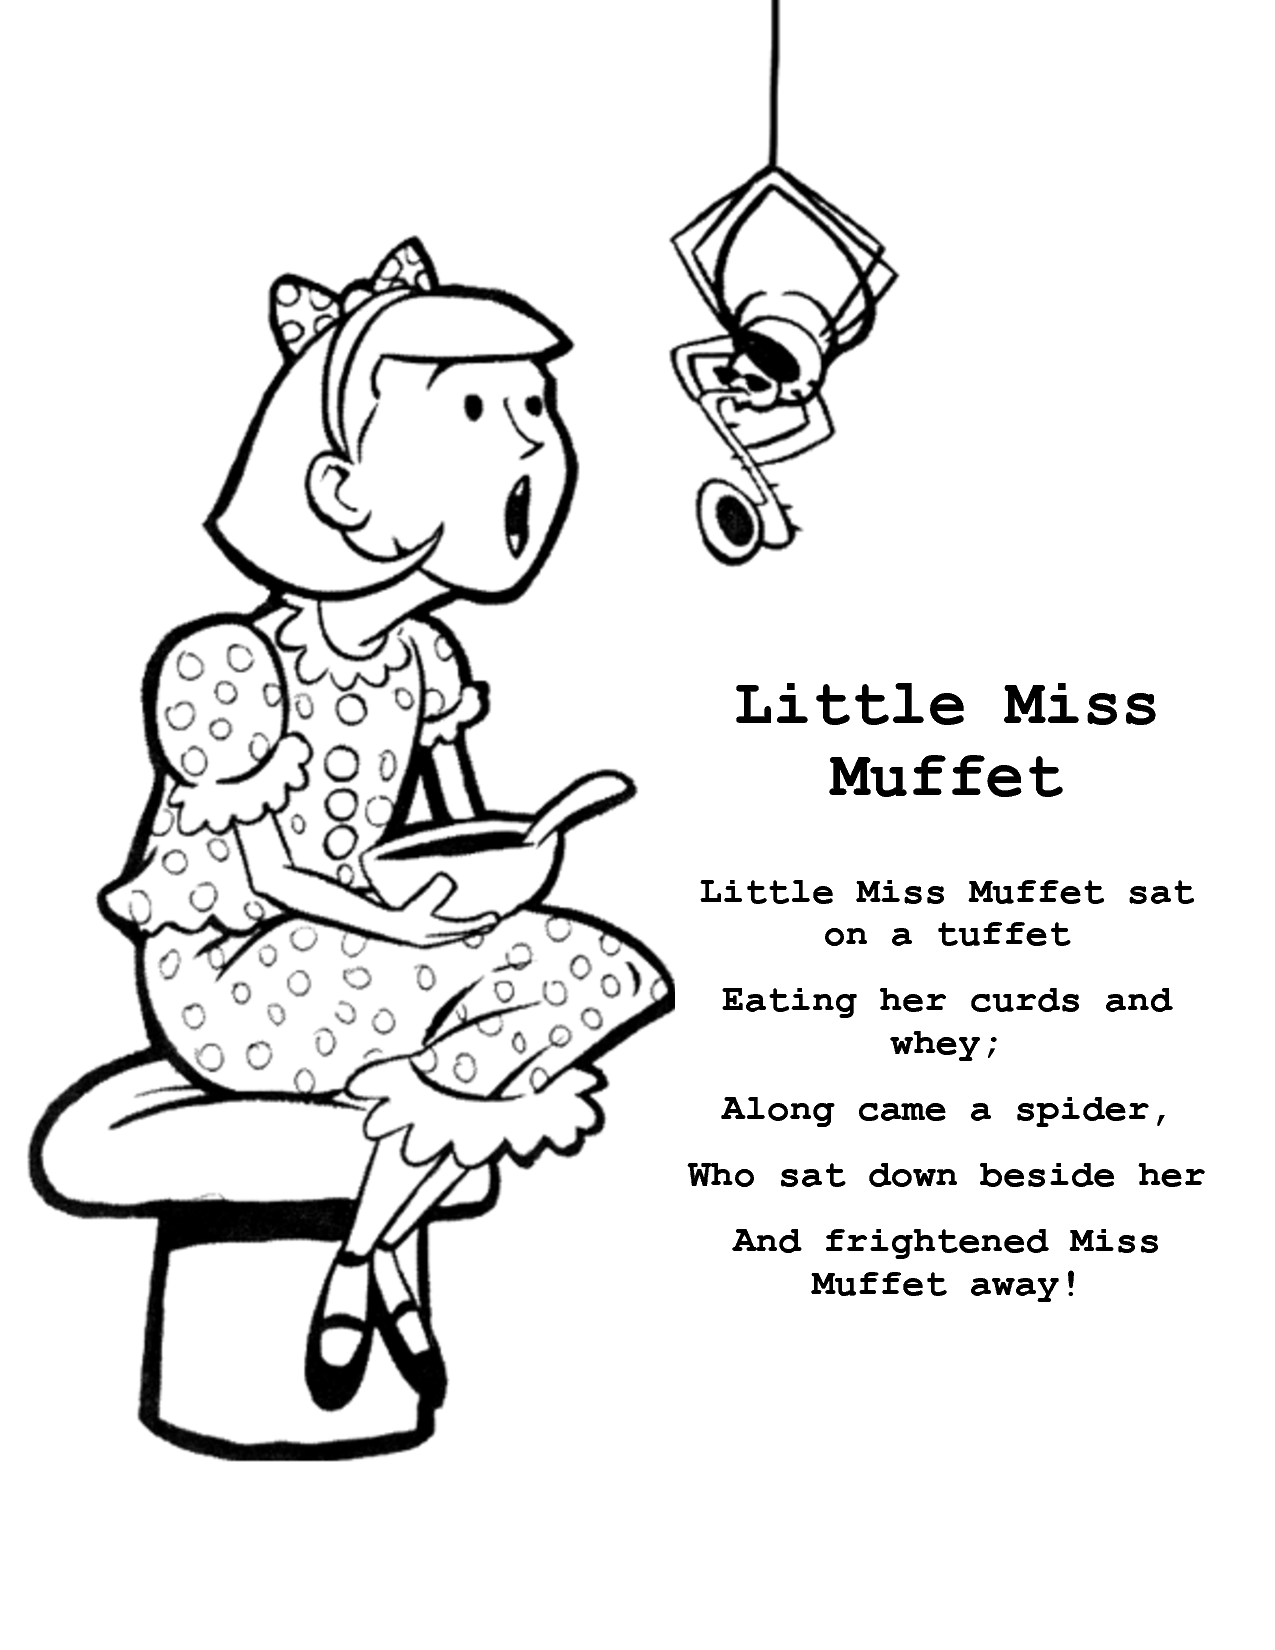 Little Miss Muffet Sat On A Tuffet Eating Her Curds And